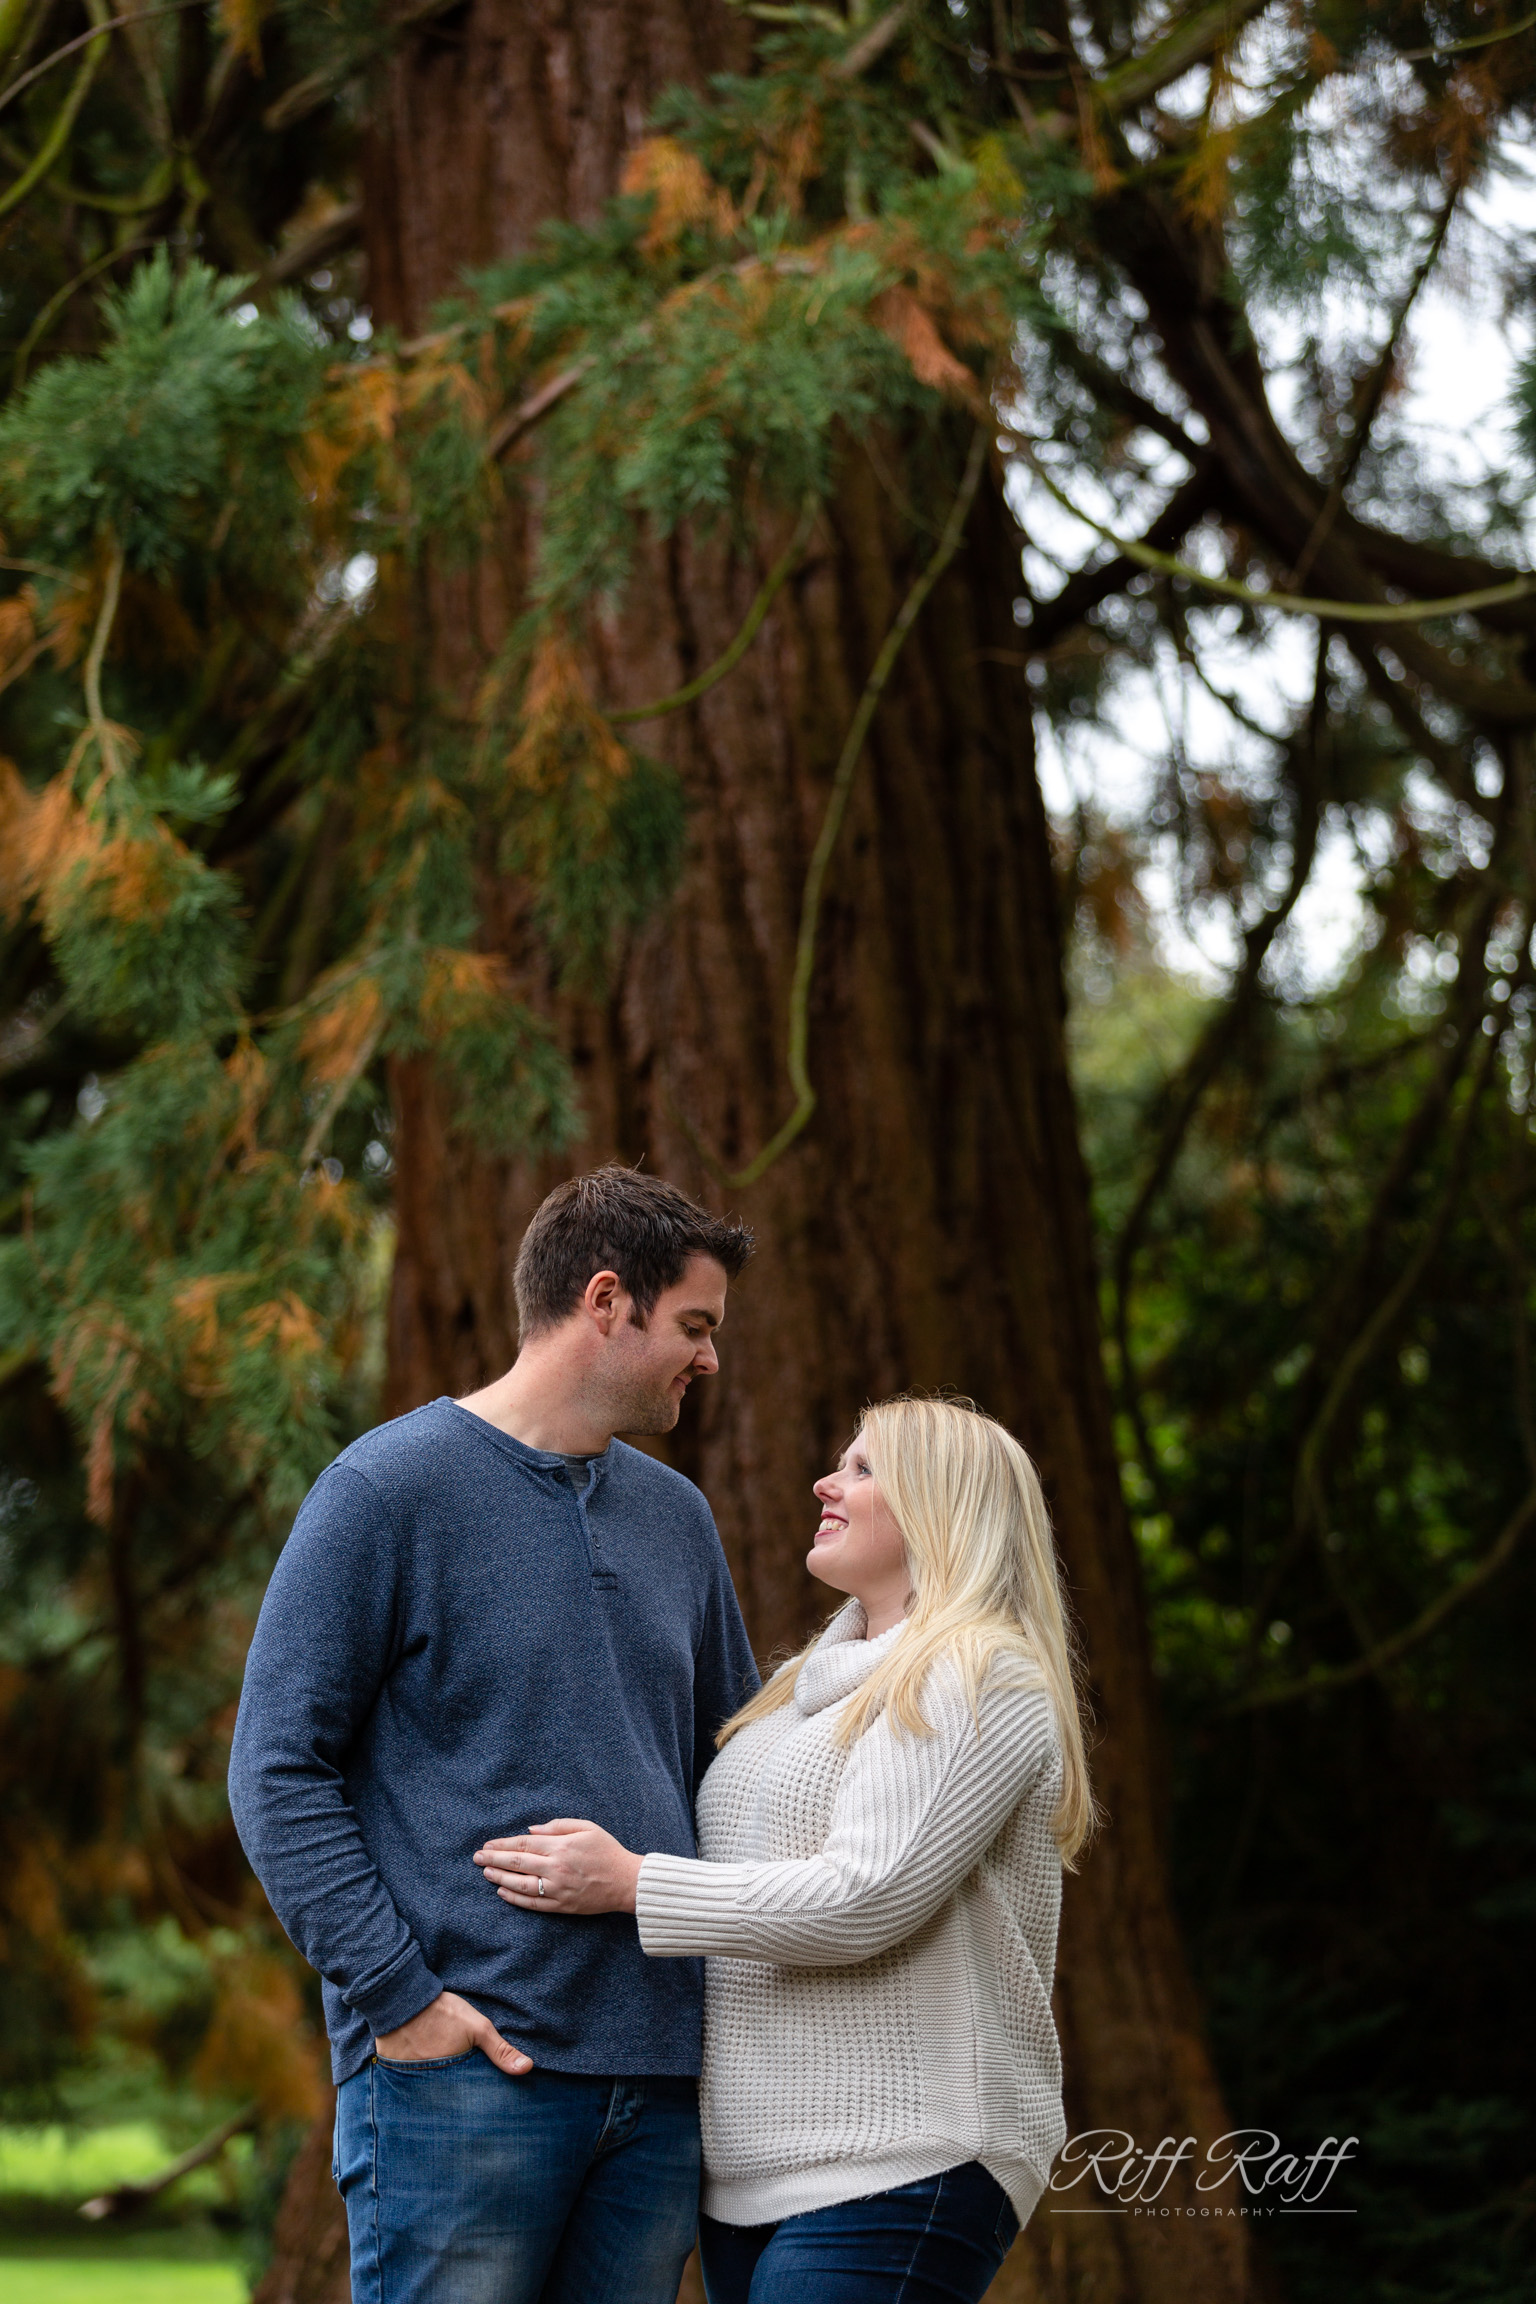 Fiona & Adam Engagement Shoot Blog-039.jpg